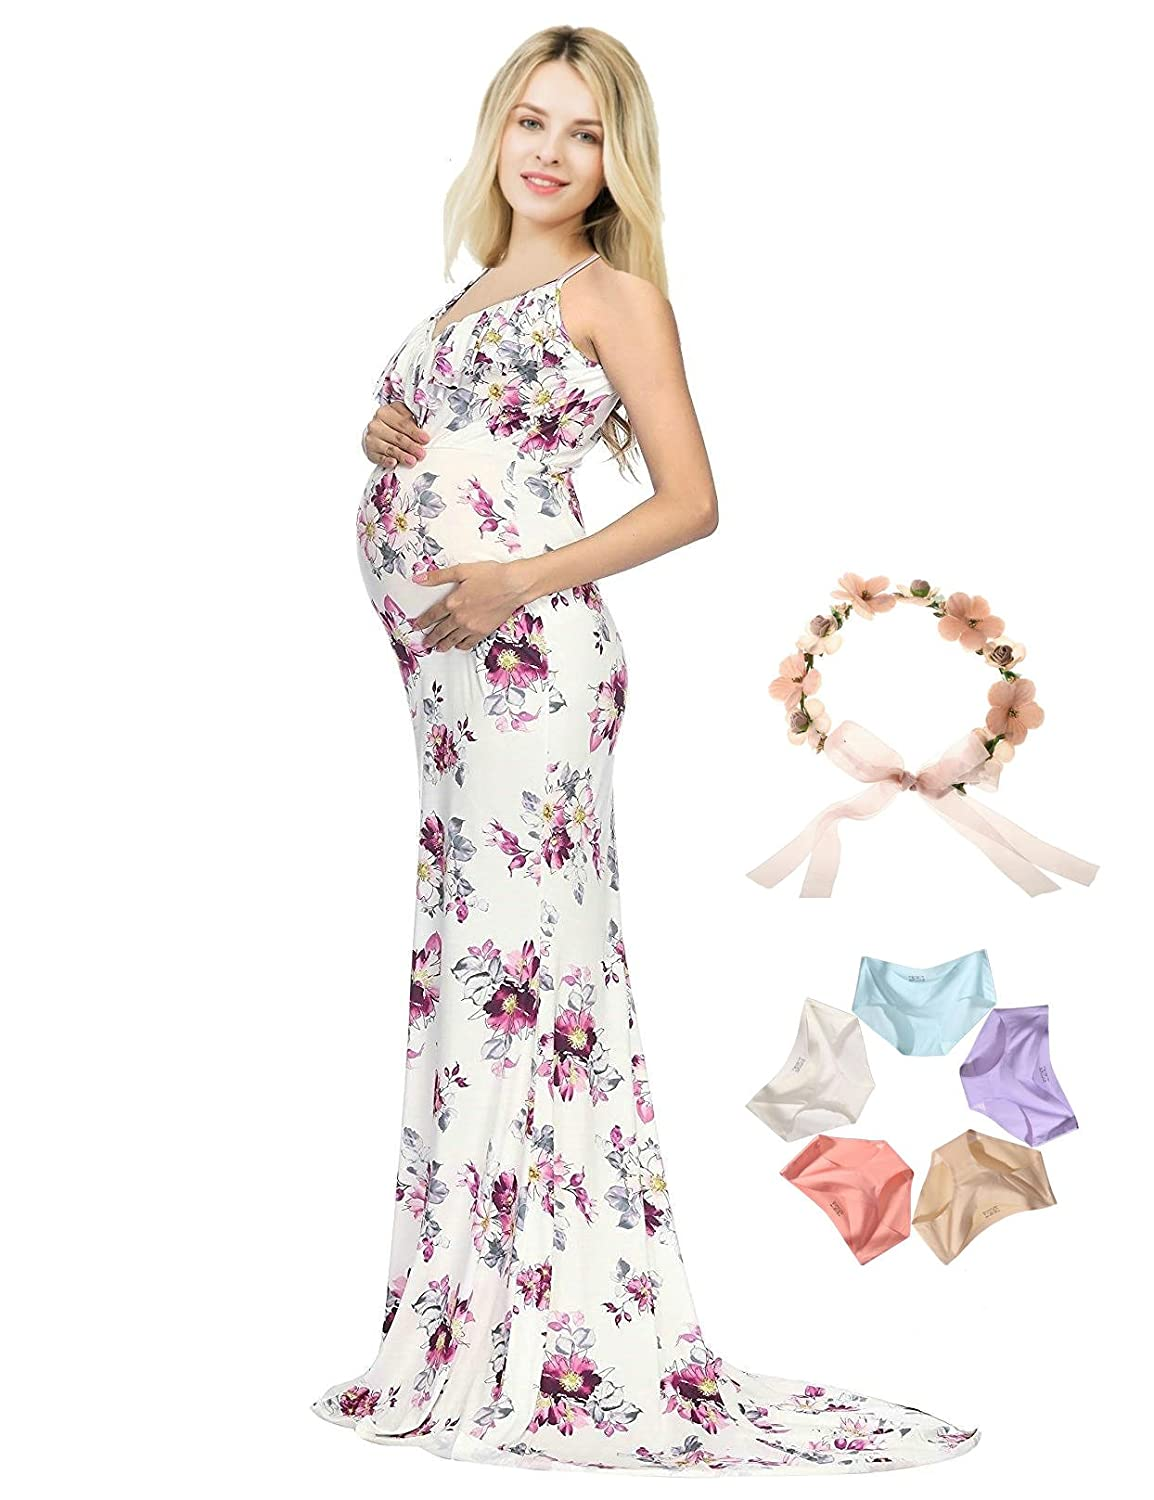 Sannyway Maternity Photography Slip Dress Sleeveless Pregnant Photoshoot Gown